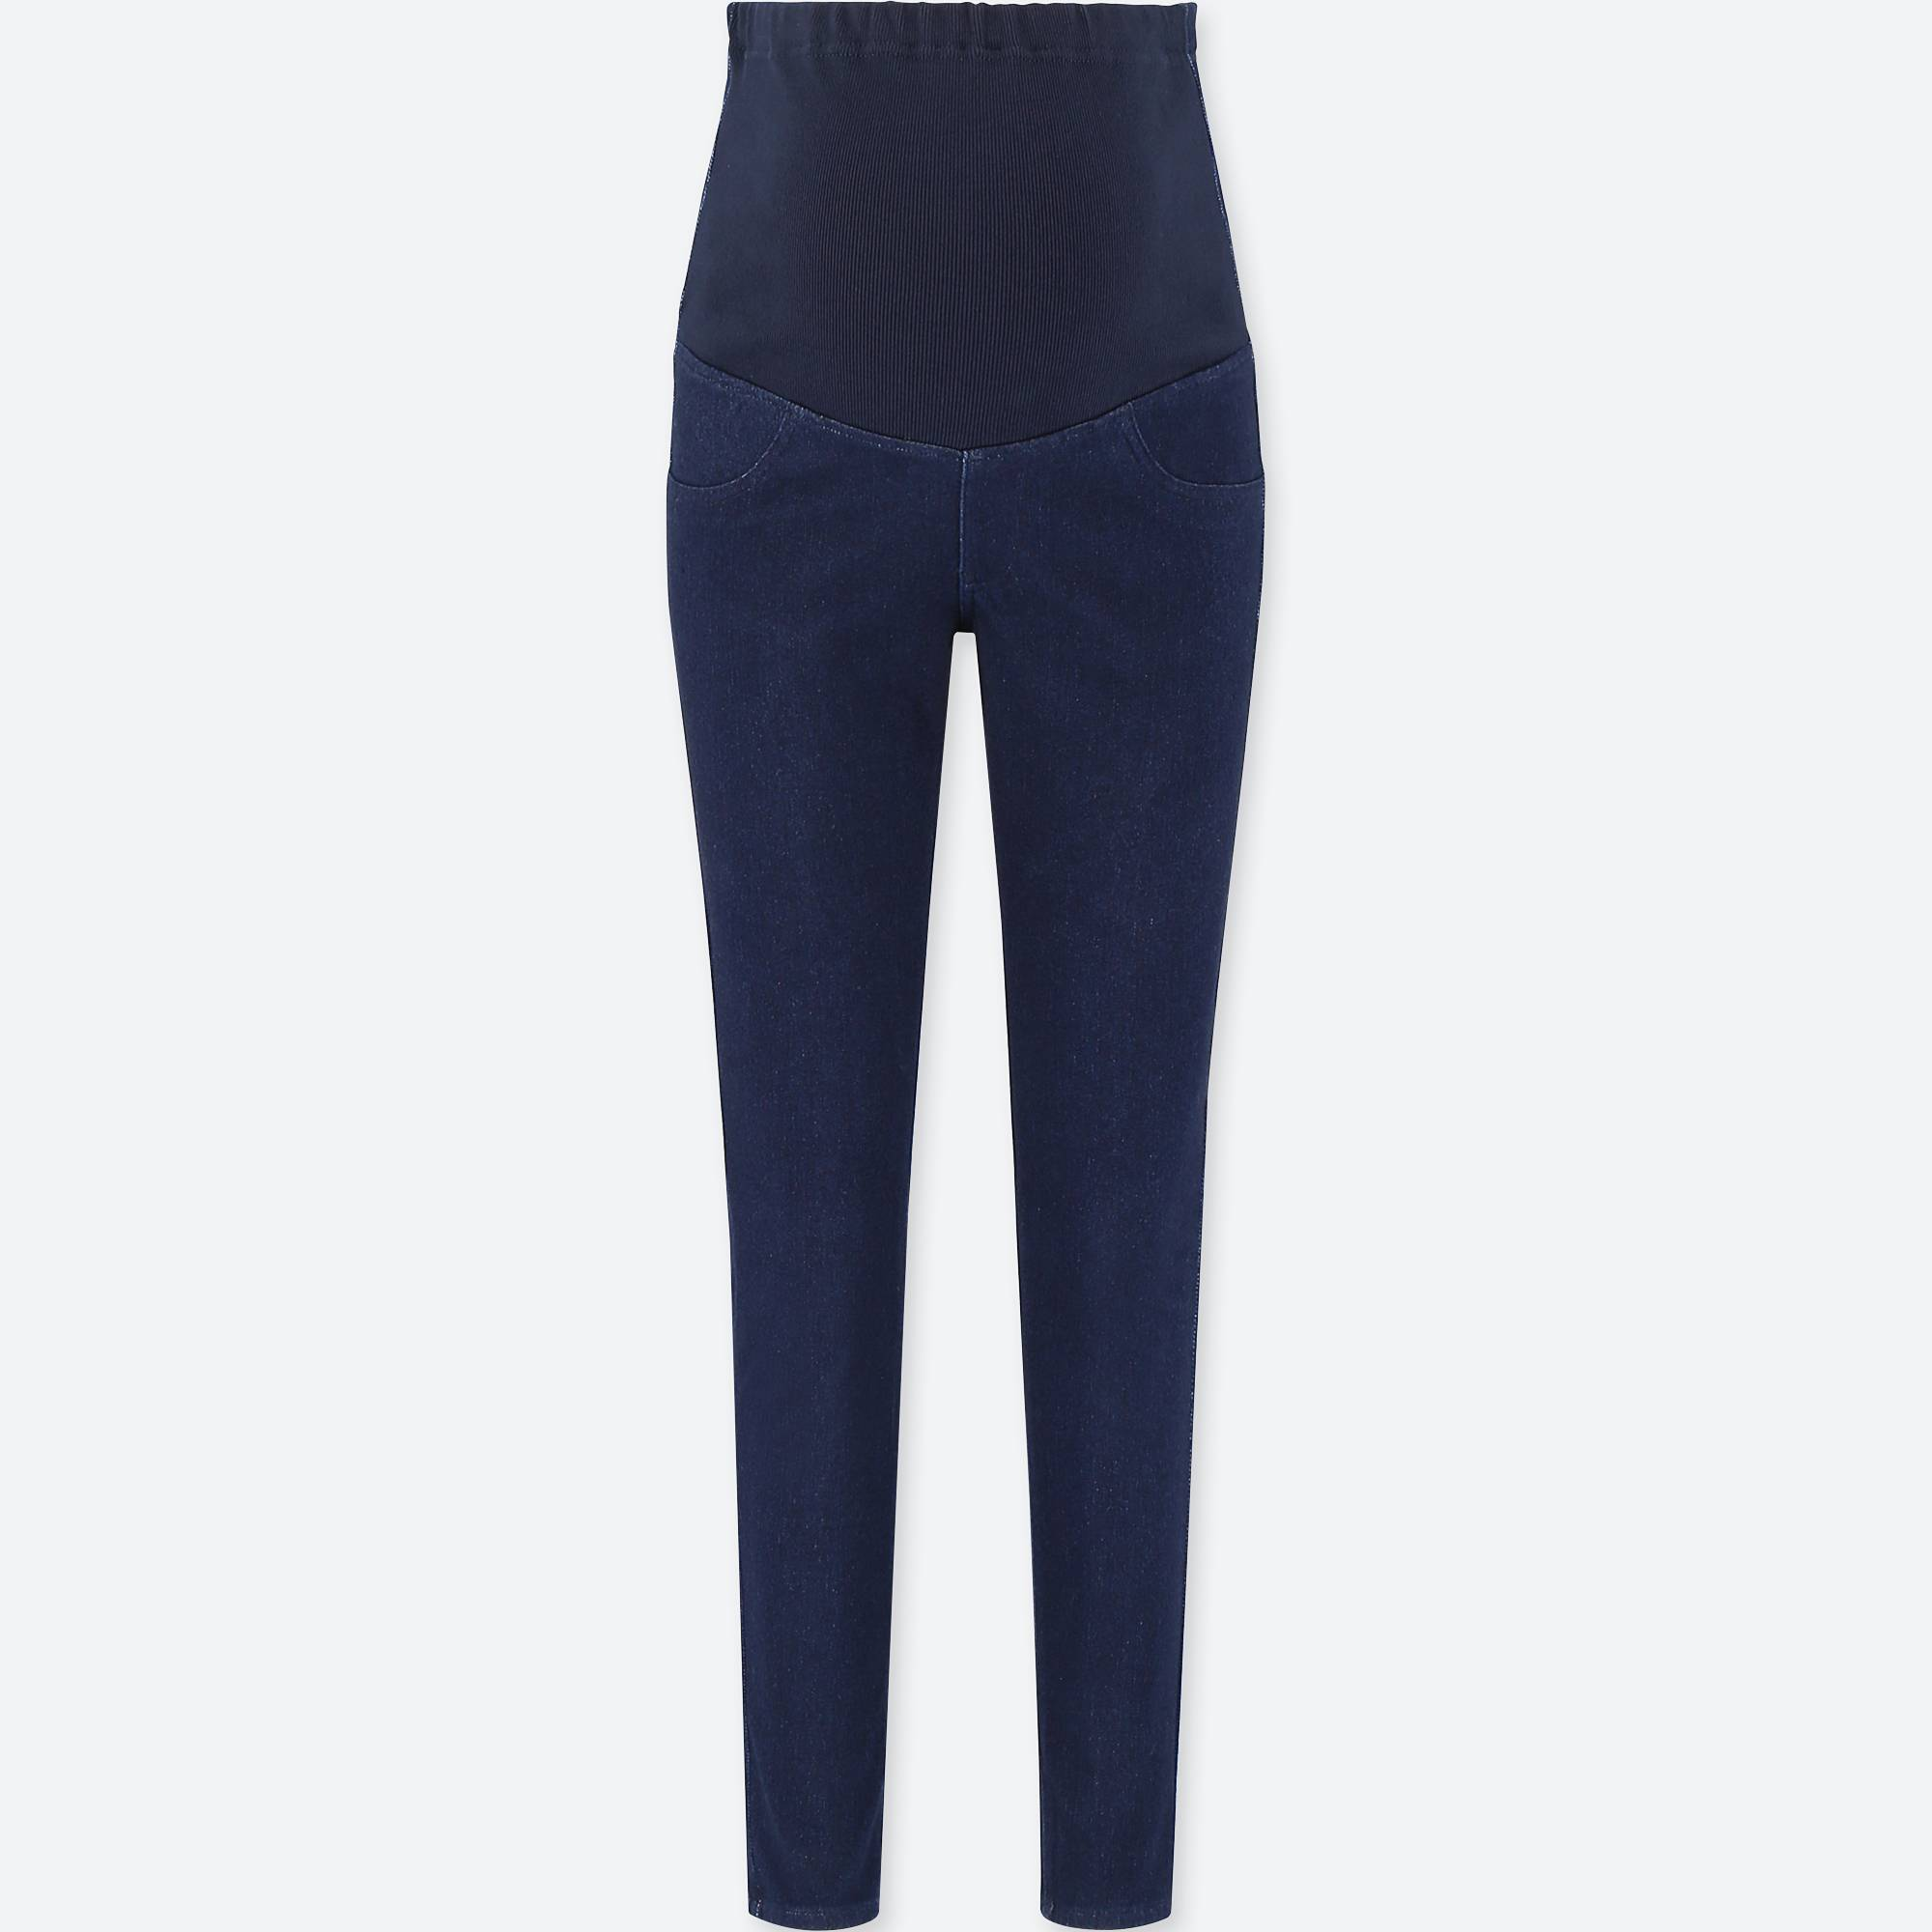 UNIQLO / Quần legging women maternity denim leggings pants